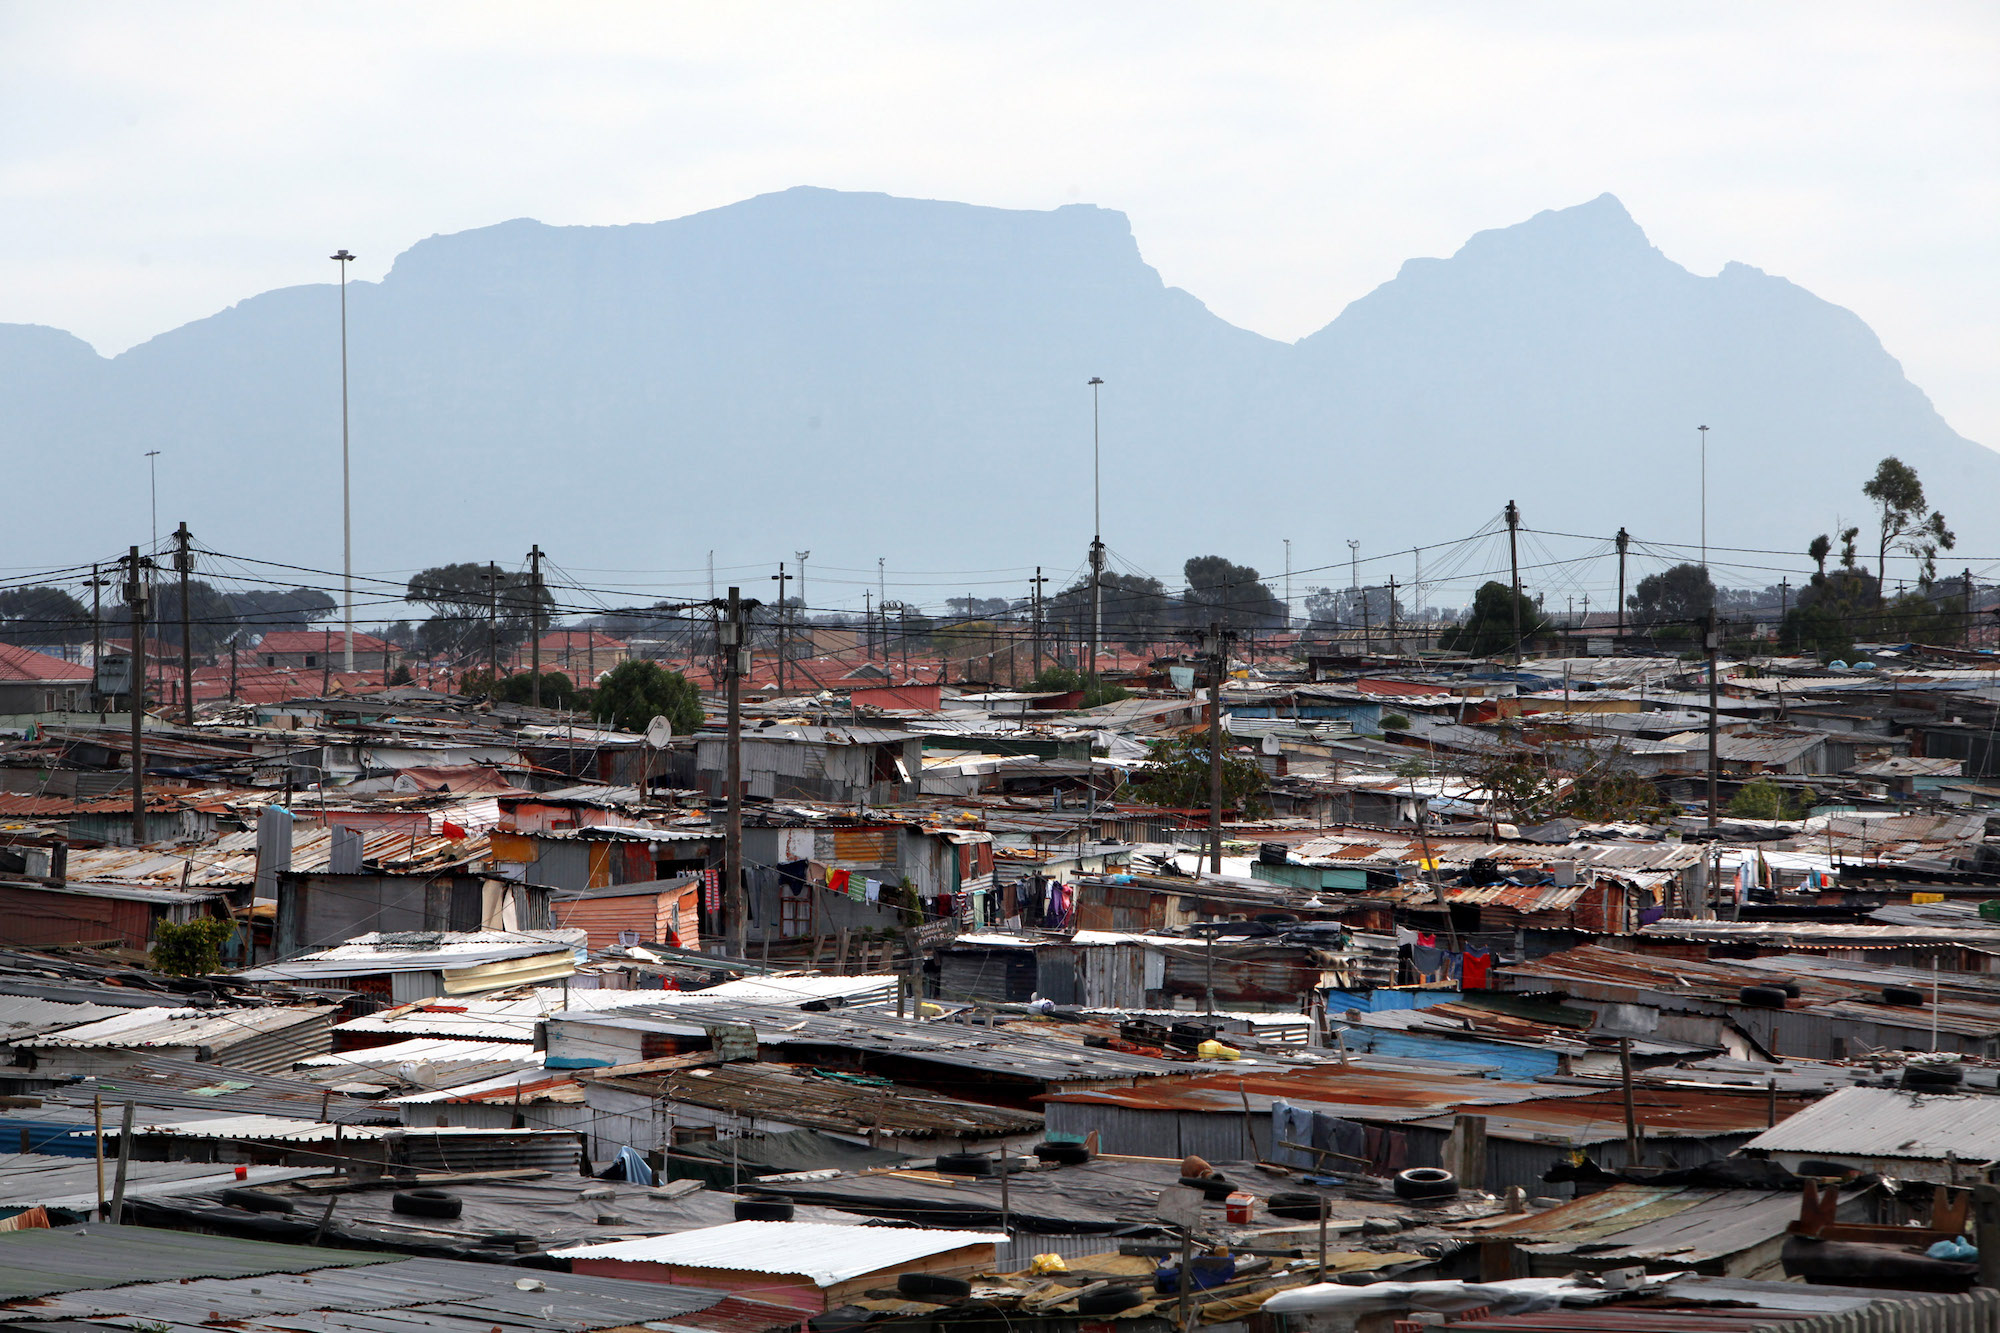 A view of Khayelitsha township, one of the largest townships in South Africa, with Table Mountain in the background, August 7, 2011. (Tess Scheflan/Activestills.org)